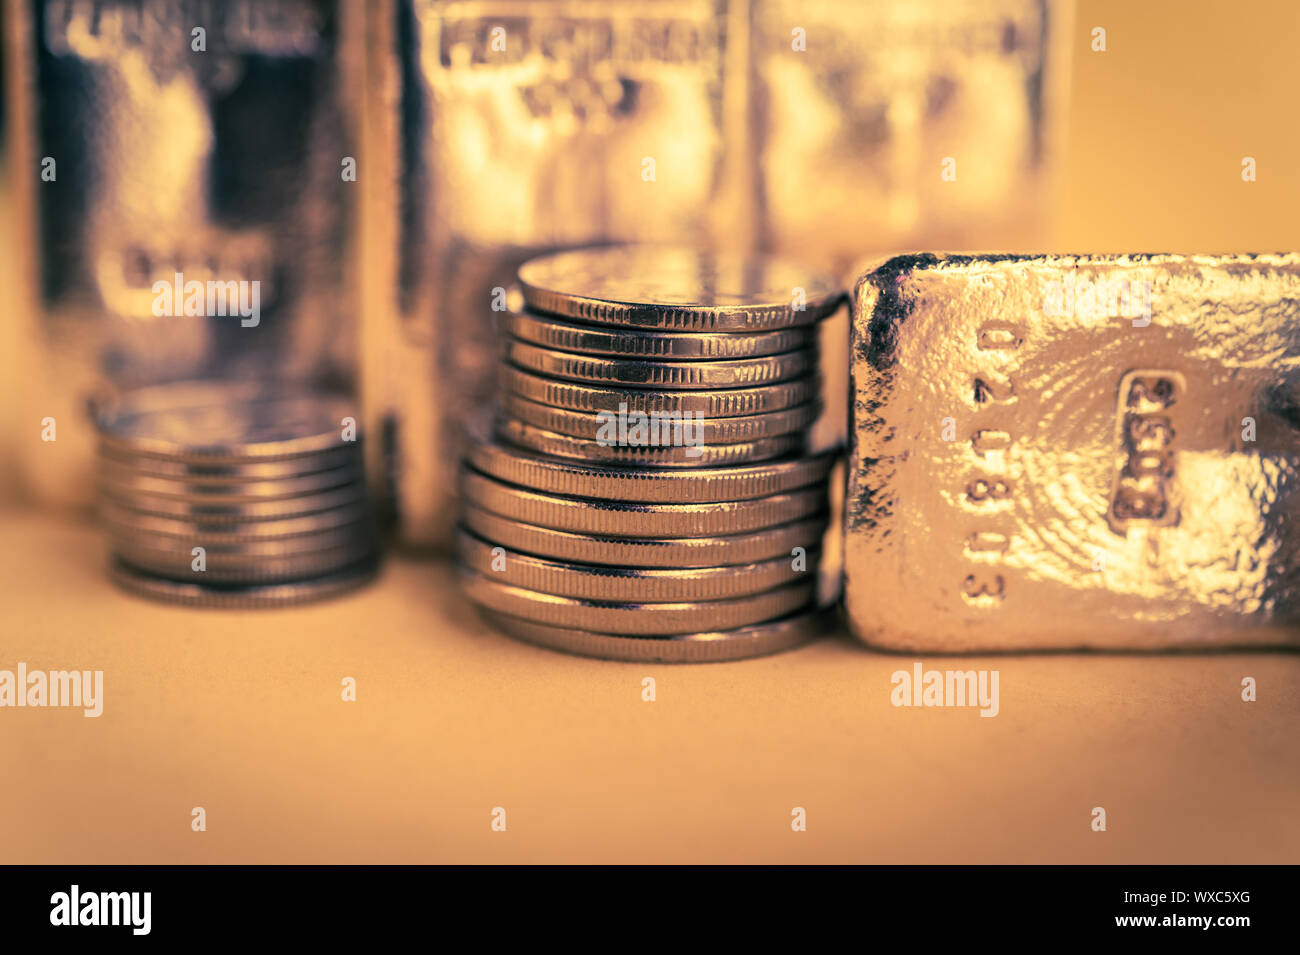 Gold bars and stack of gold coins. Background for finance banking concept. Trade in precious metals. Stock Photo